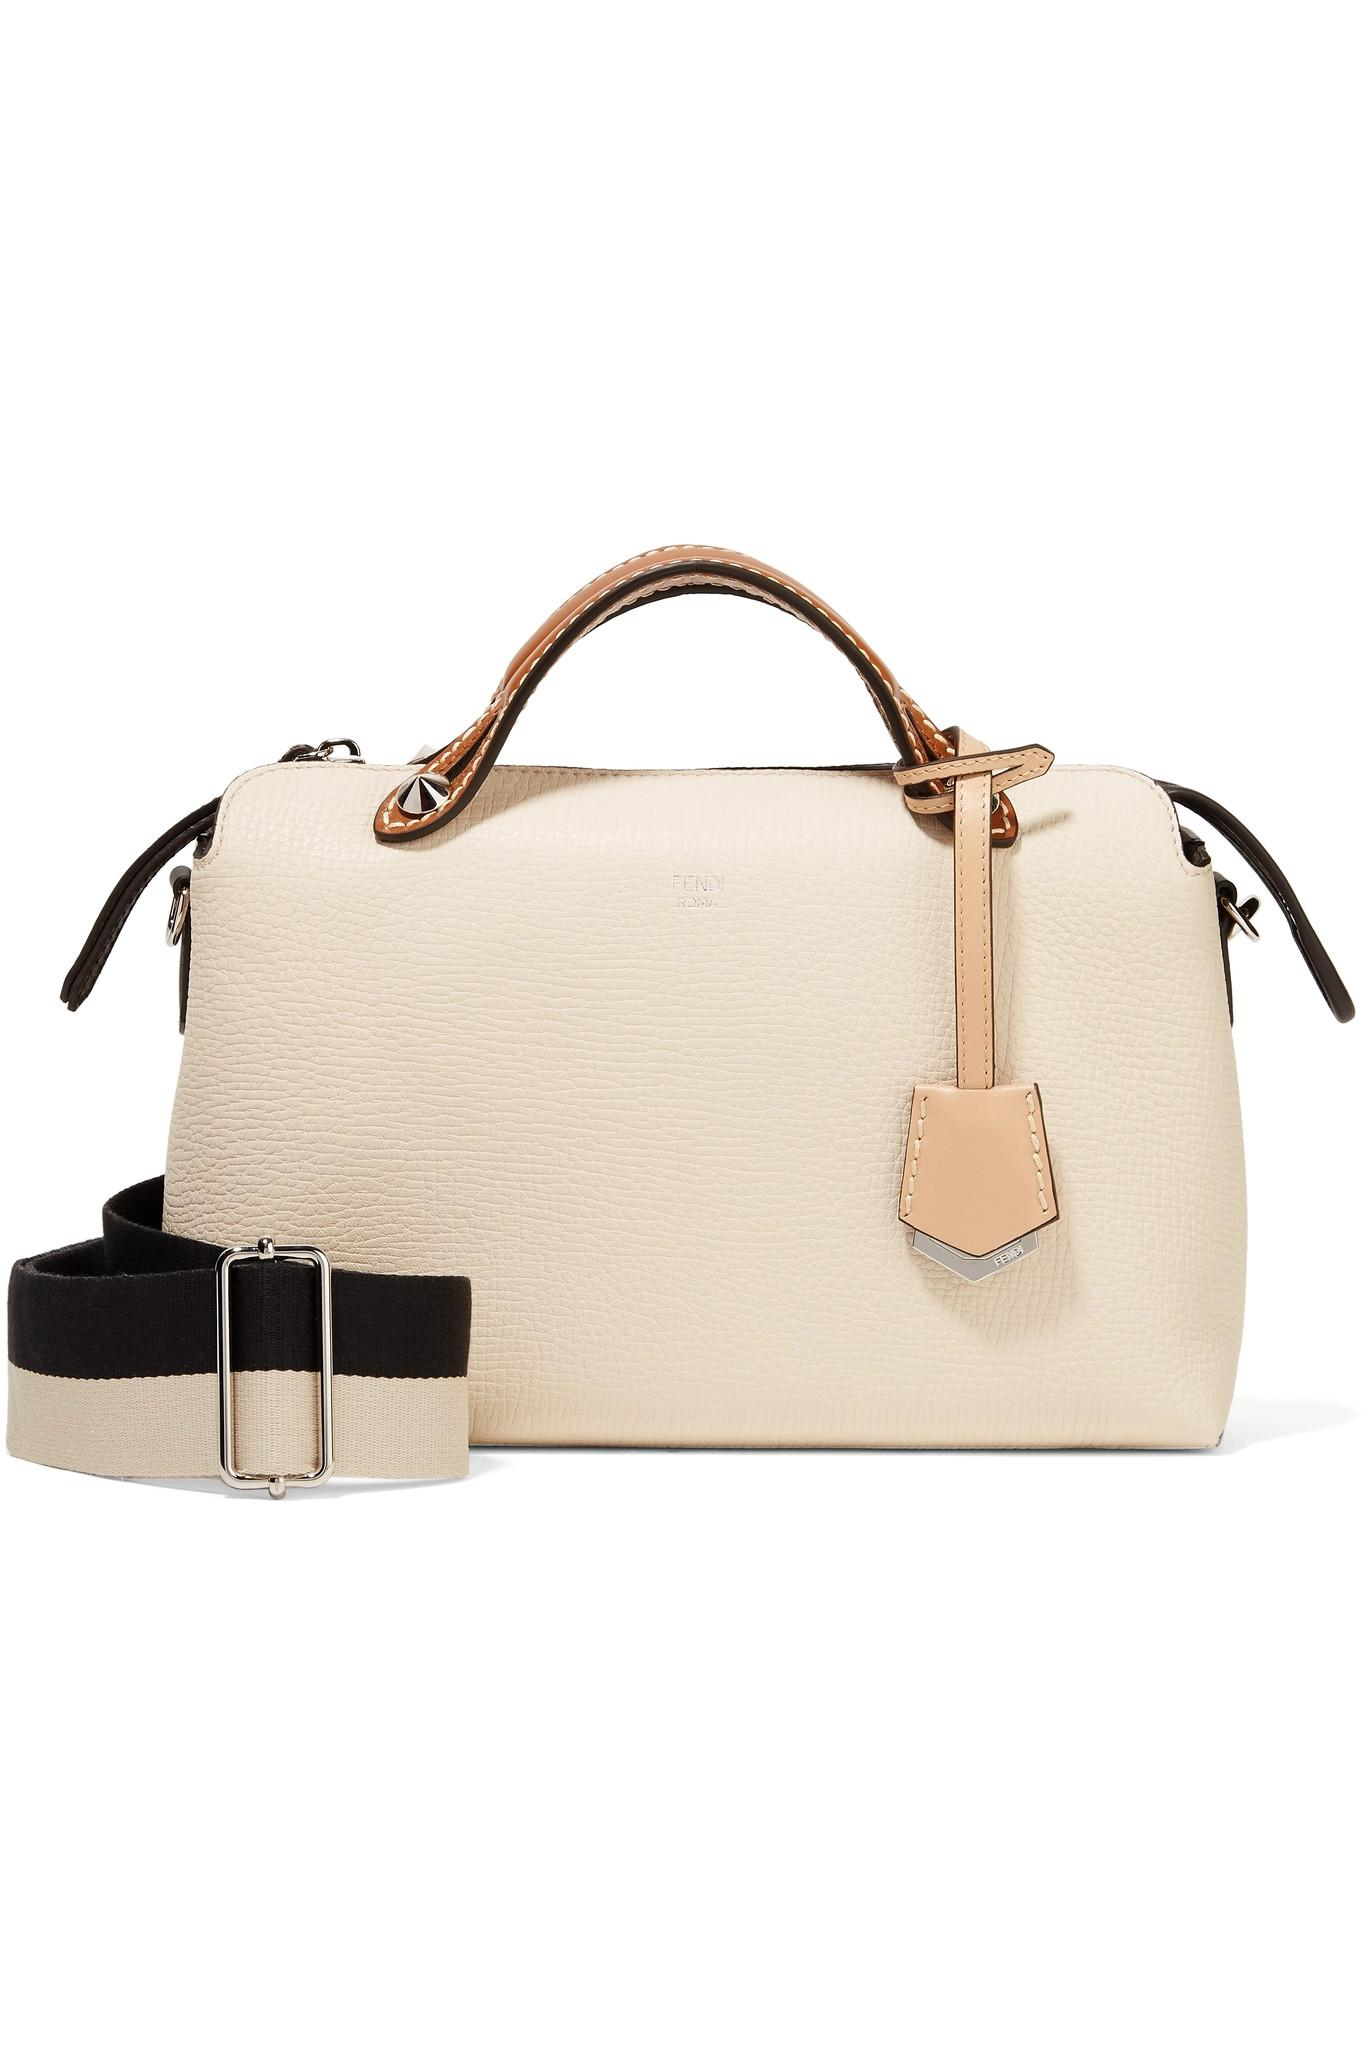 a4d85acaba4d Fendi. Women s White By The Way Small Color-block Textured-leather Shoulder  Bag